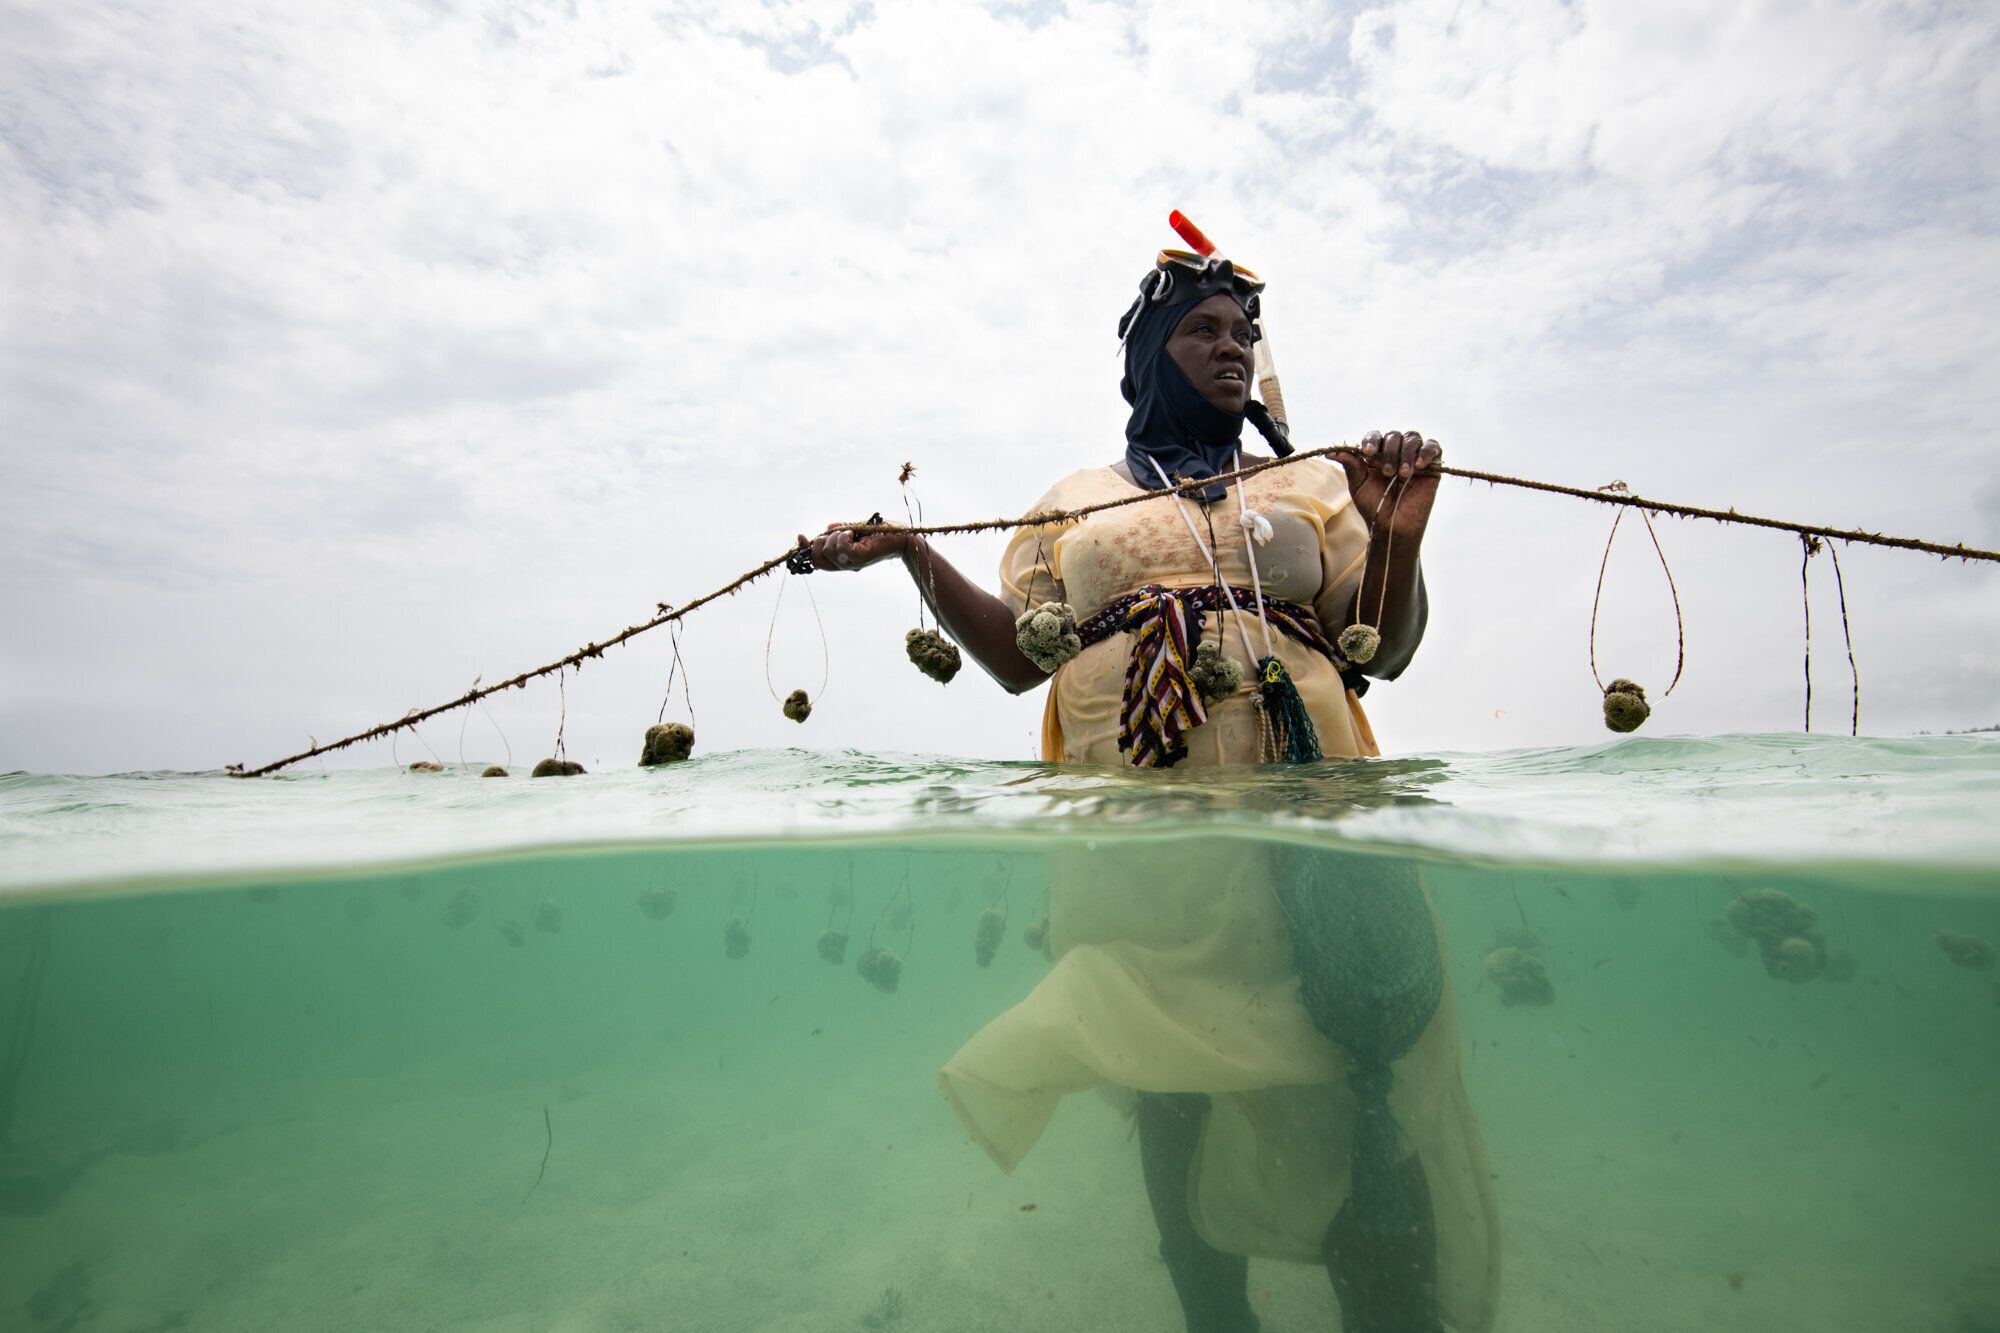 Nasir Hassan Haji holds a rope of sponges on her farm. She was one of the first 2 sponge farmers in Jambiani and previously f